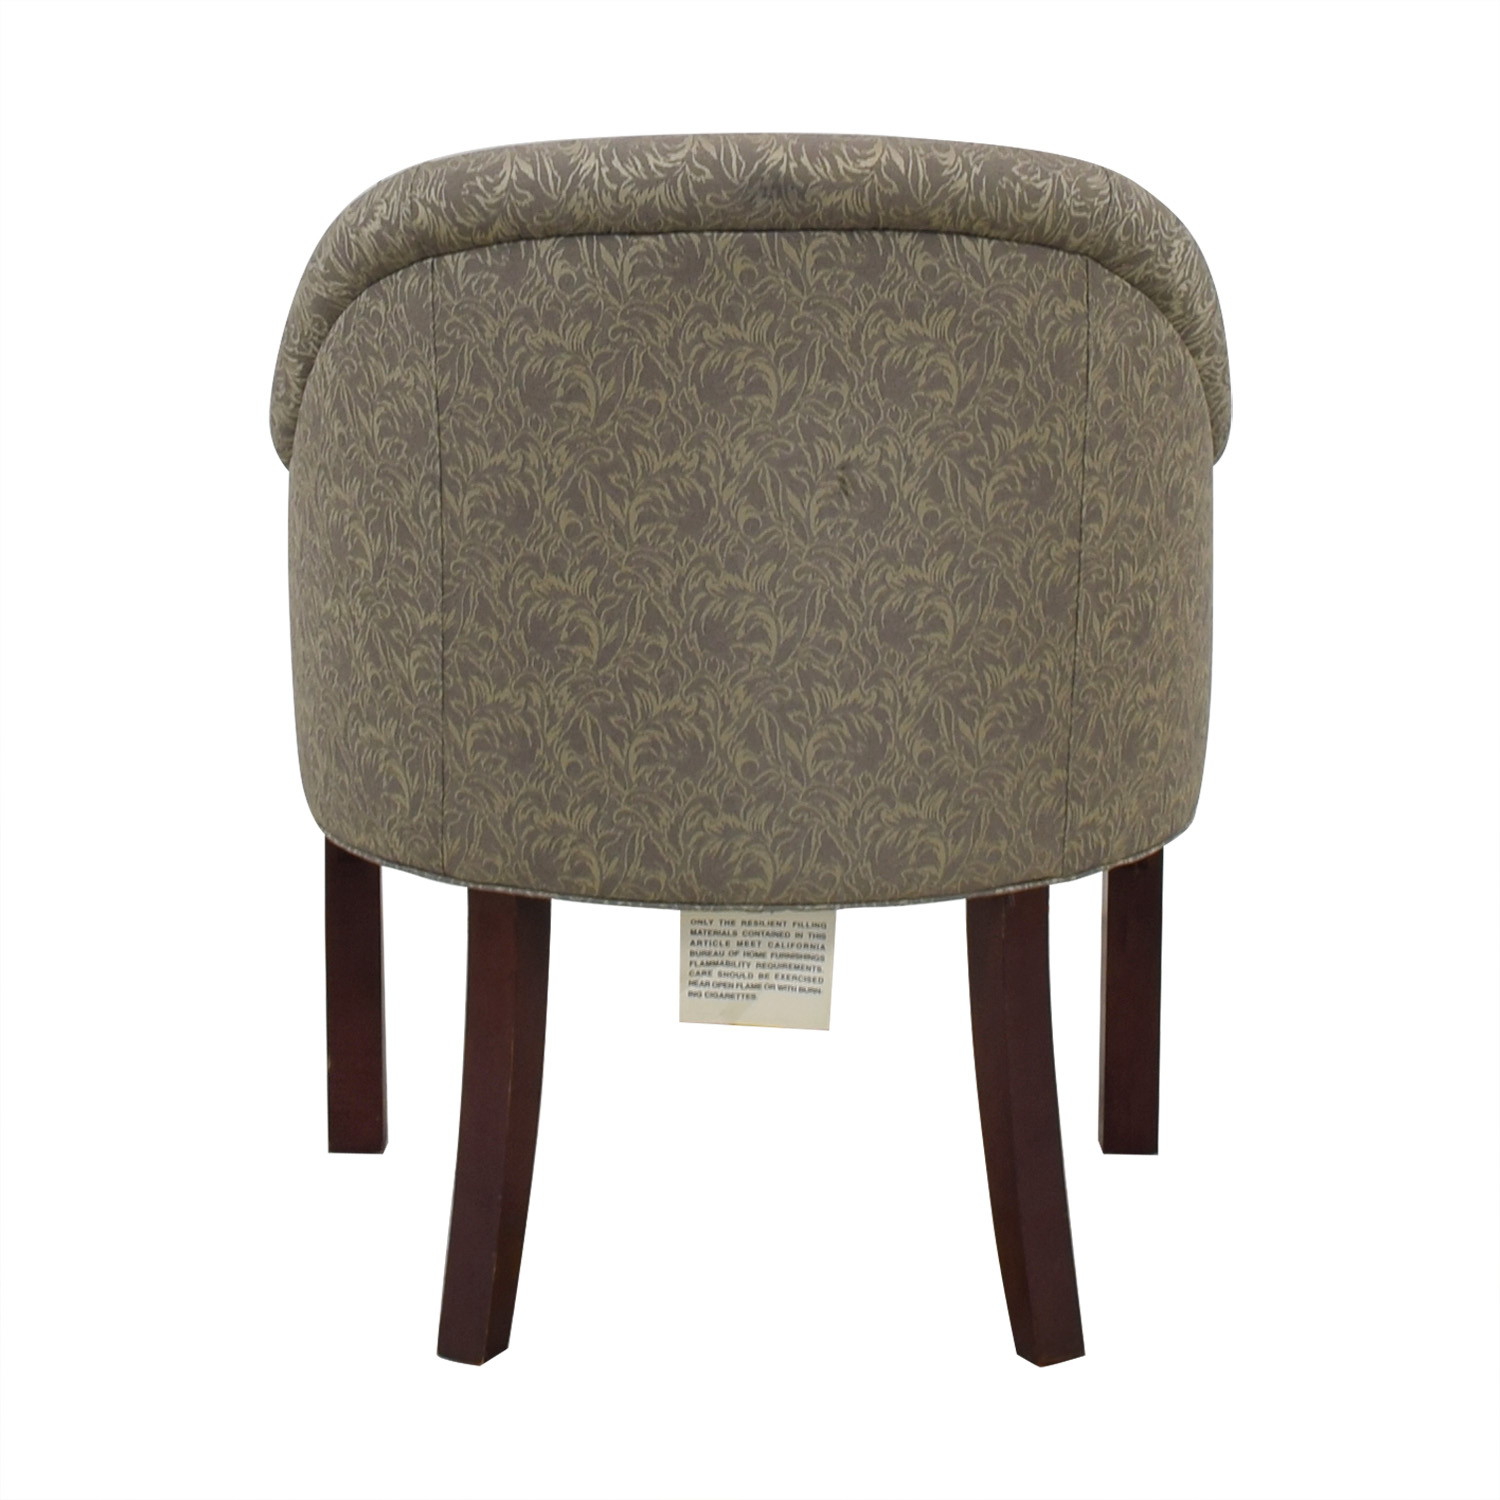 Kimball Kimball Independence Newcastle Chair grey